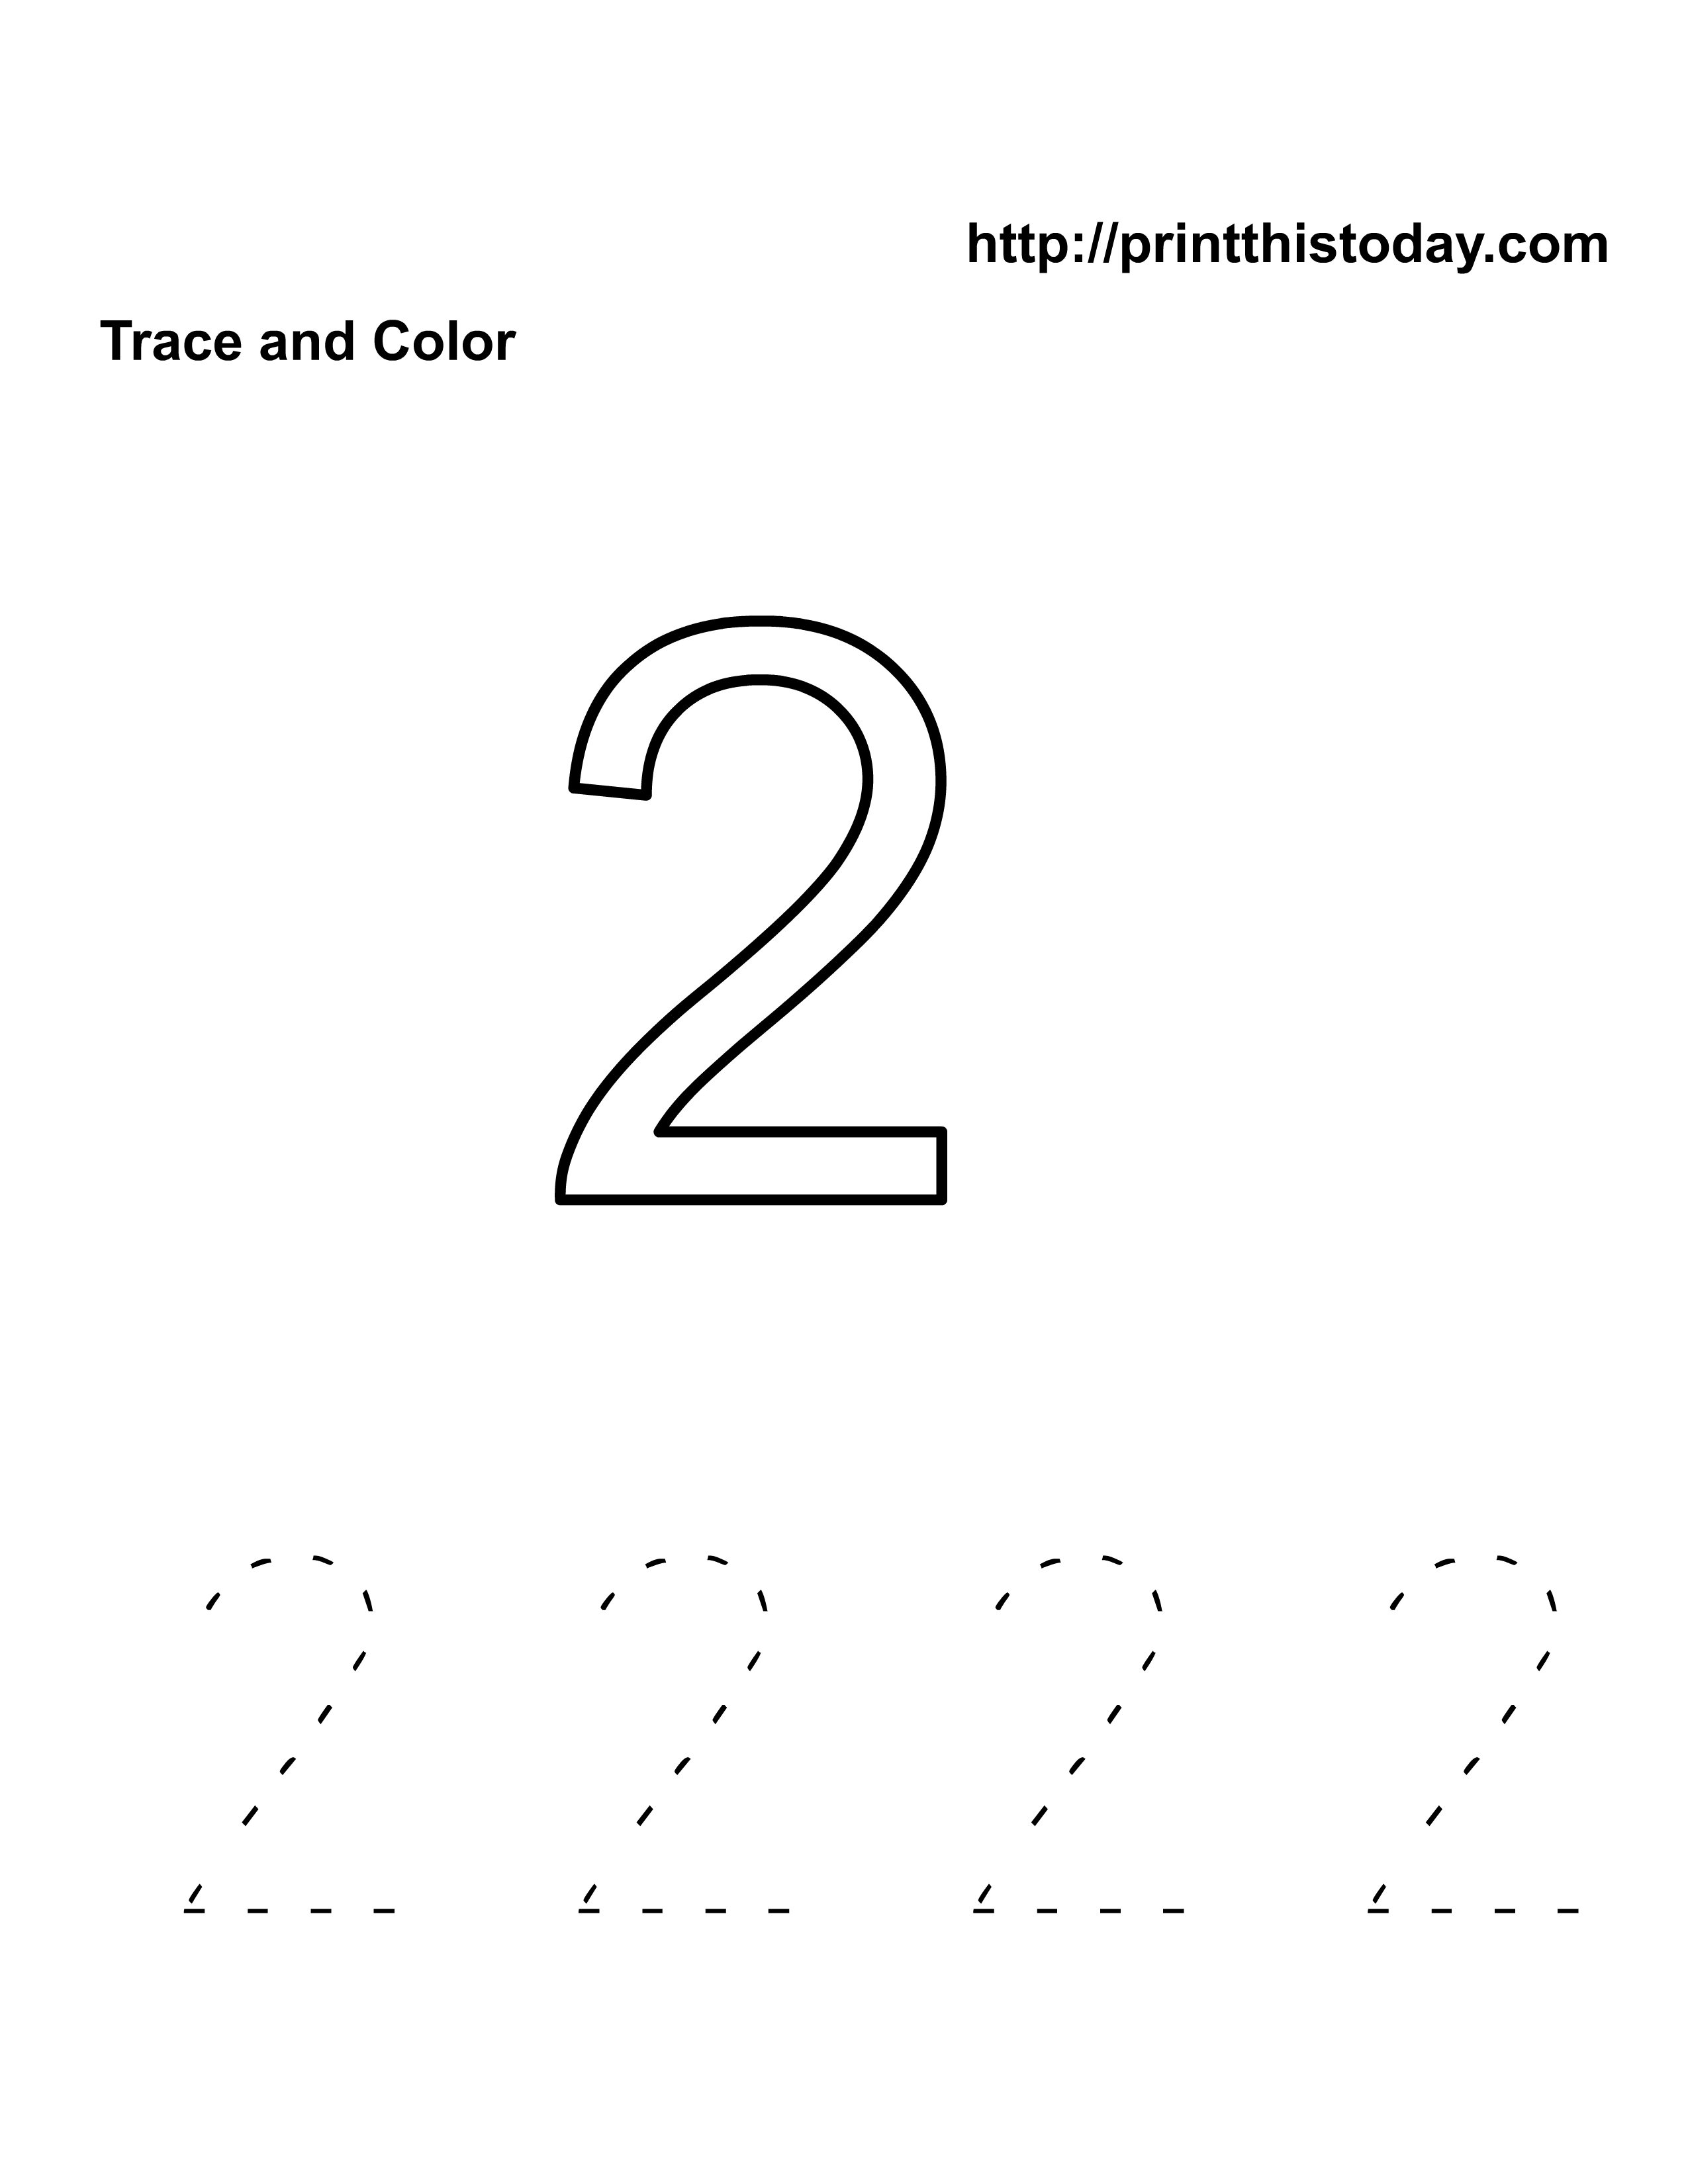 Free Printable Number Tracing Worksheets For Preschoolers – Kindergarten Number Tracing Worksheets